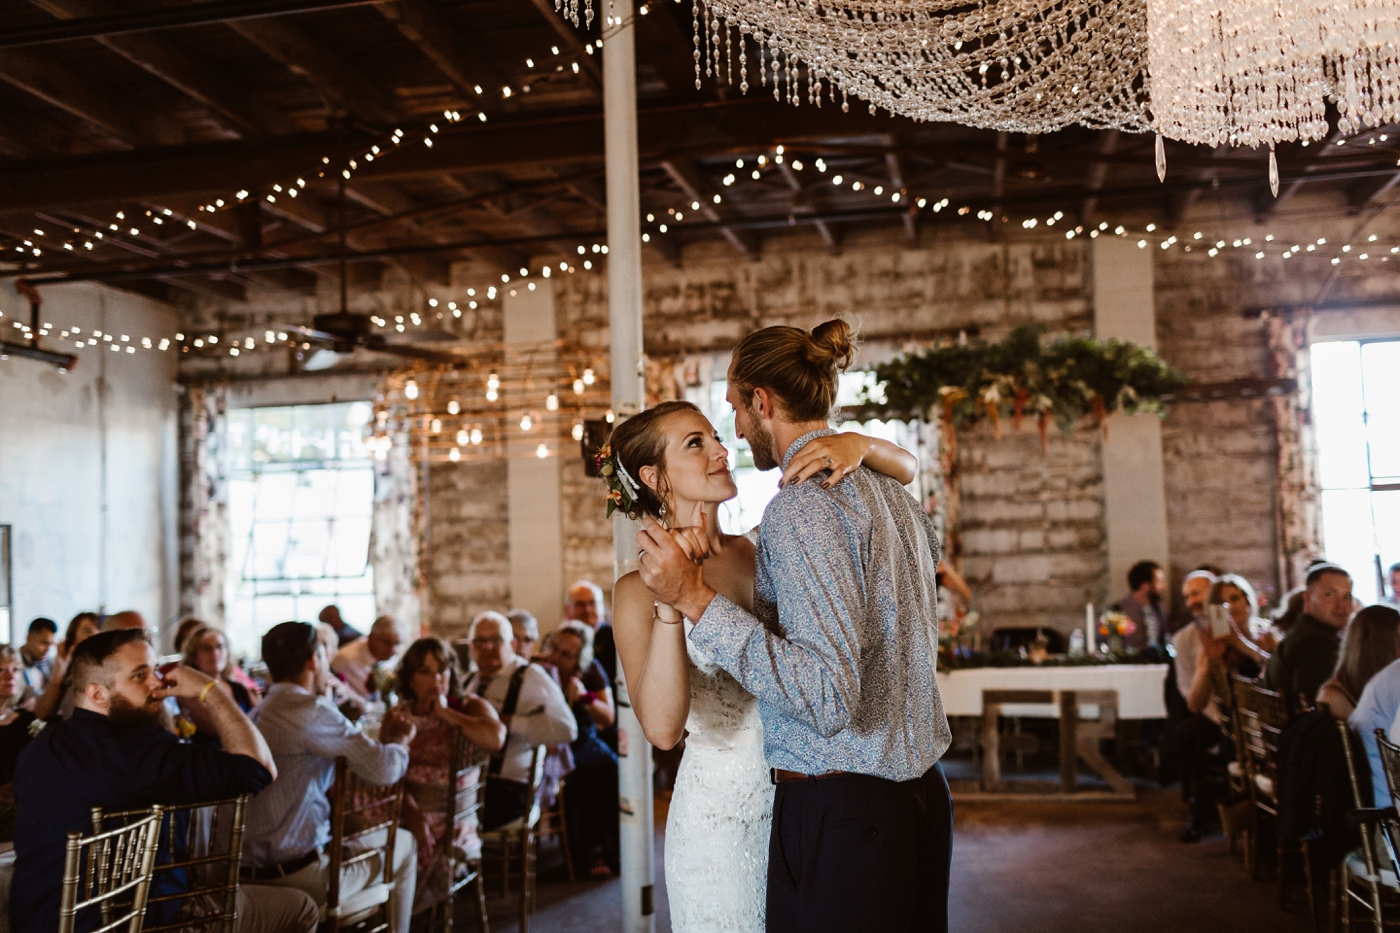 twinkle lights for first dance at wedding